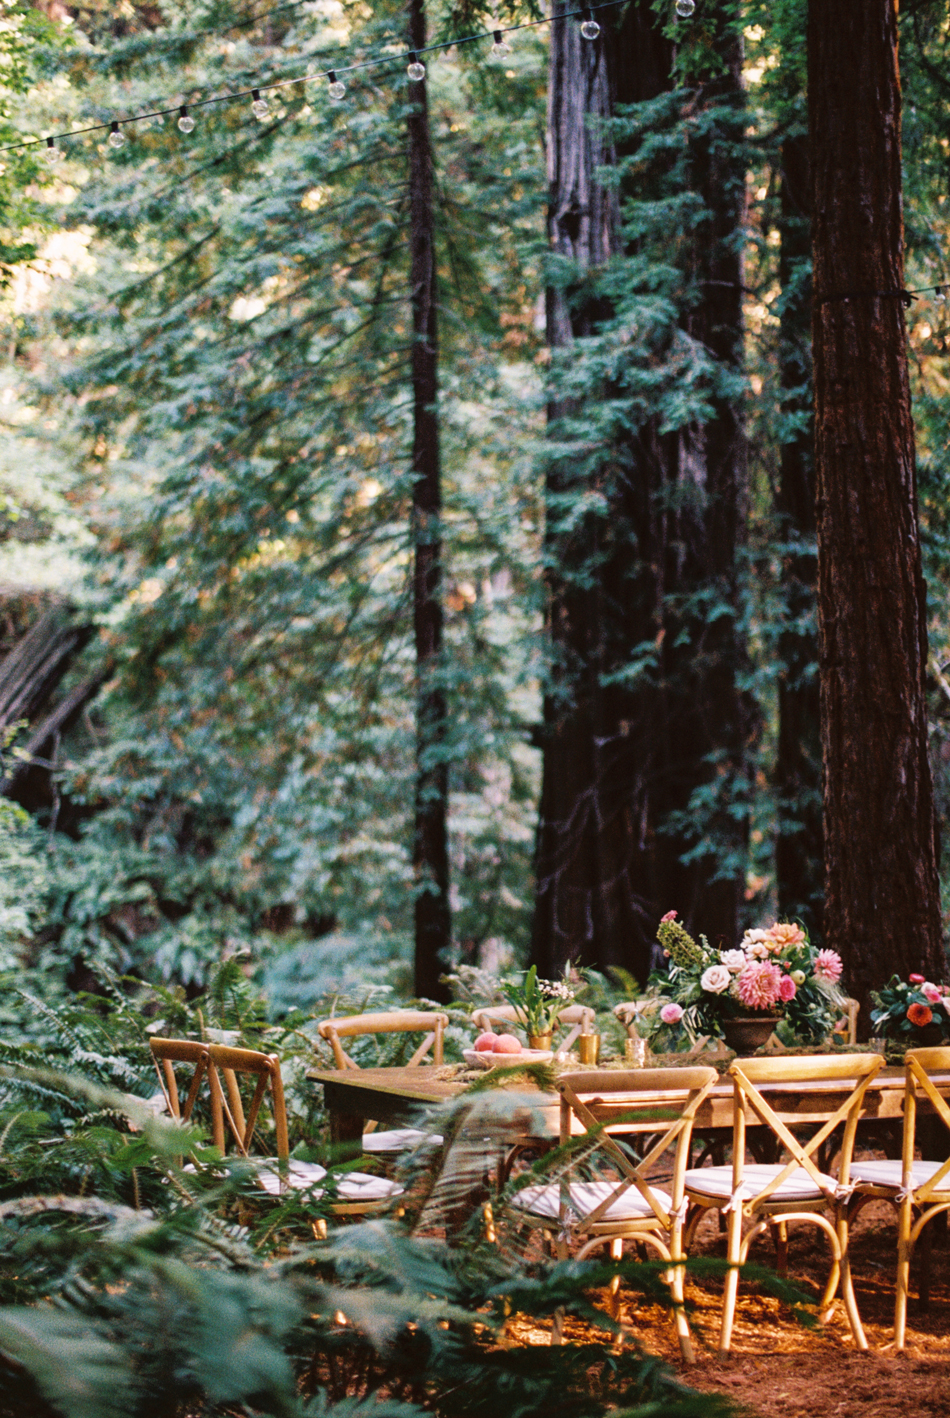 medieval-feast-style outdoor wedding reception set up